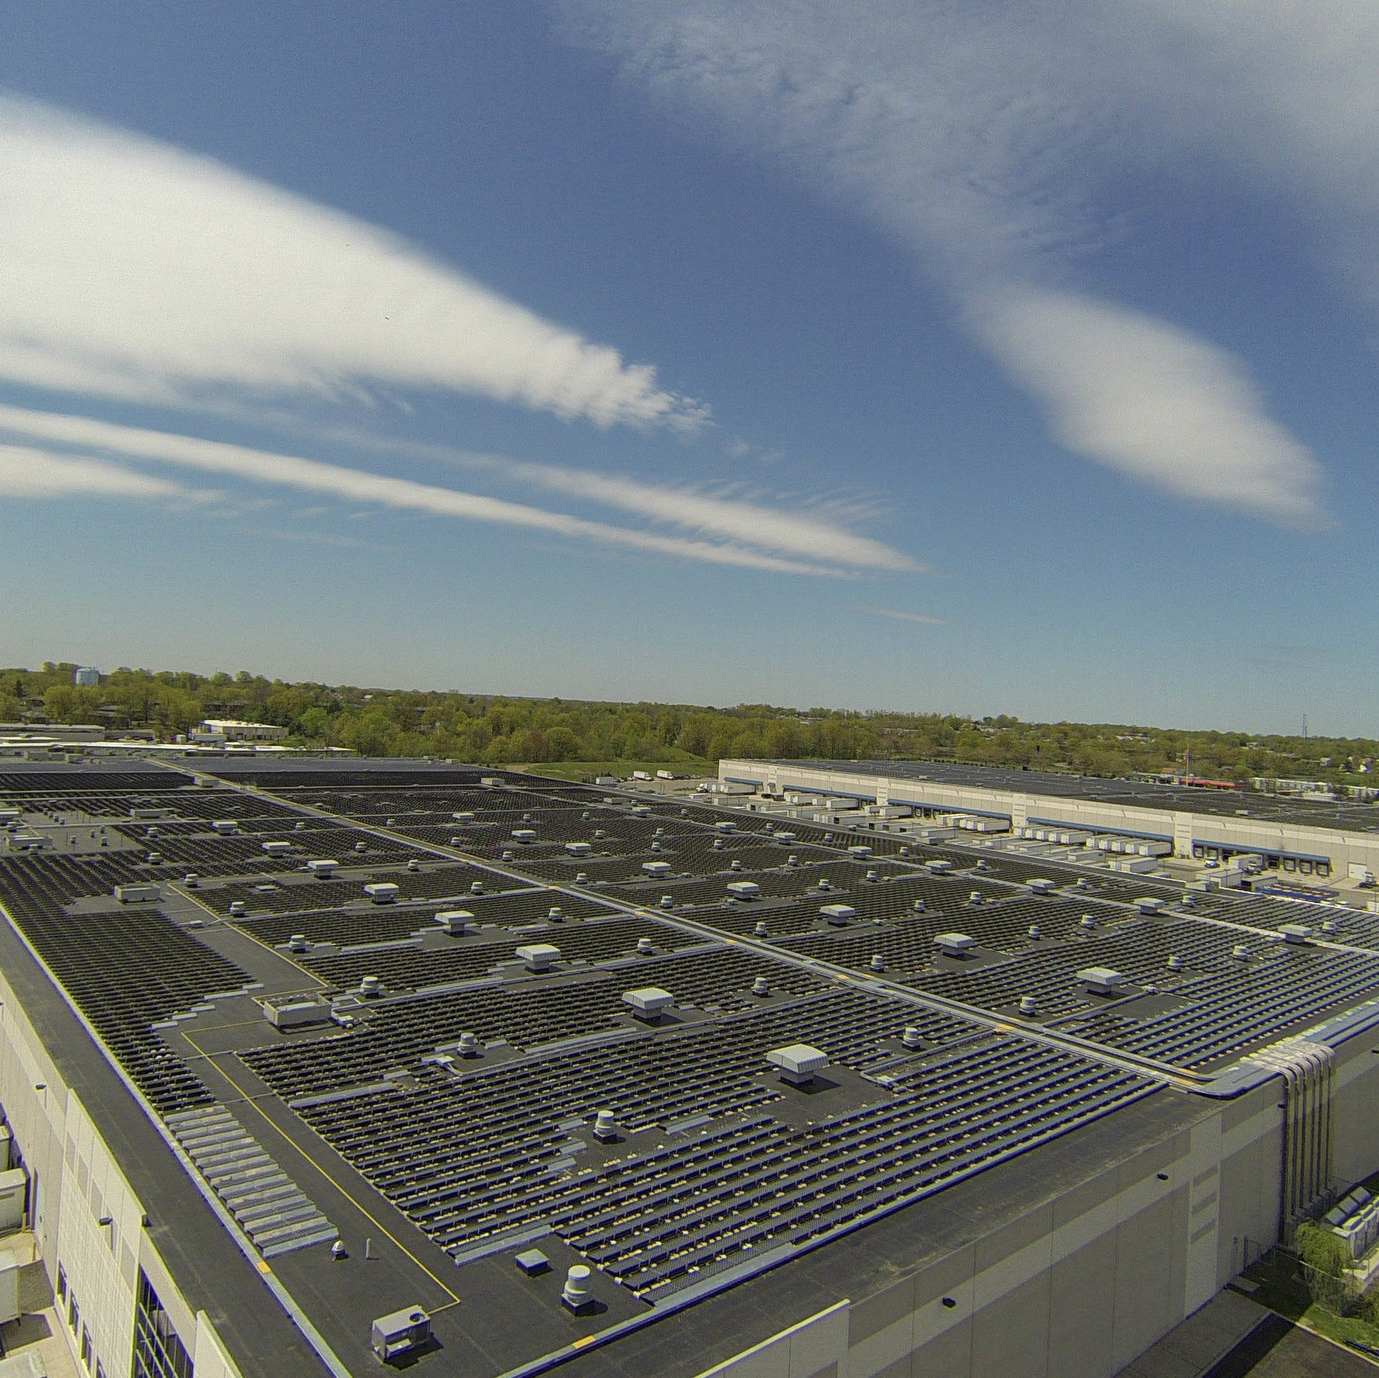 US Foods - 8.1 MW rooftop installation in Perth Amboy, NJUtility Company: Public Service Electric & Gas/ US FoodsThe Swan Creek-US Foods project, one of the largest rooftop installations in the US, was already designed when DynaSolar was asked to advise on solutions to engineering and compliance risks. Working in close partnership, DynaSolar and the general contractor implemented best-practice design features and met or exceeded new code requirements. Ultimately, the project was built to the highest safety standards using Tier 1 equipment and delivered under budget.